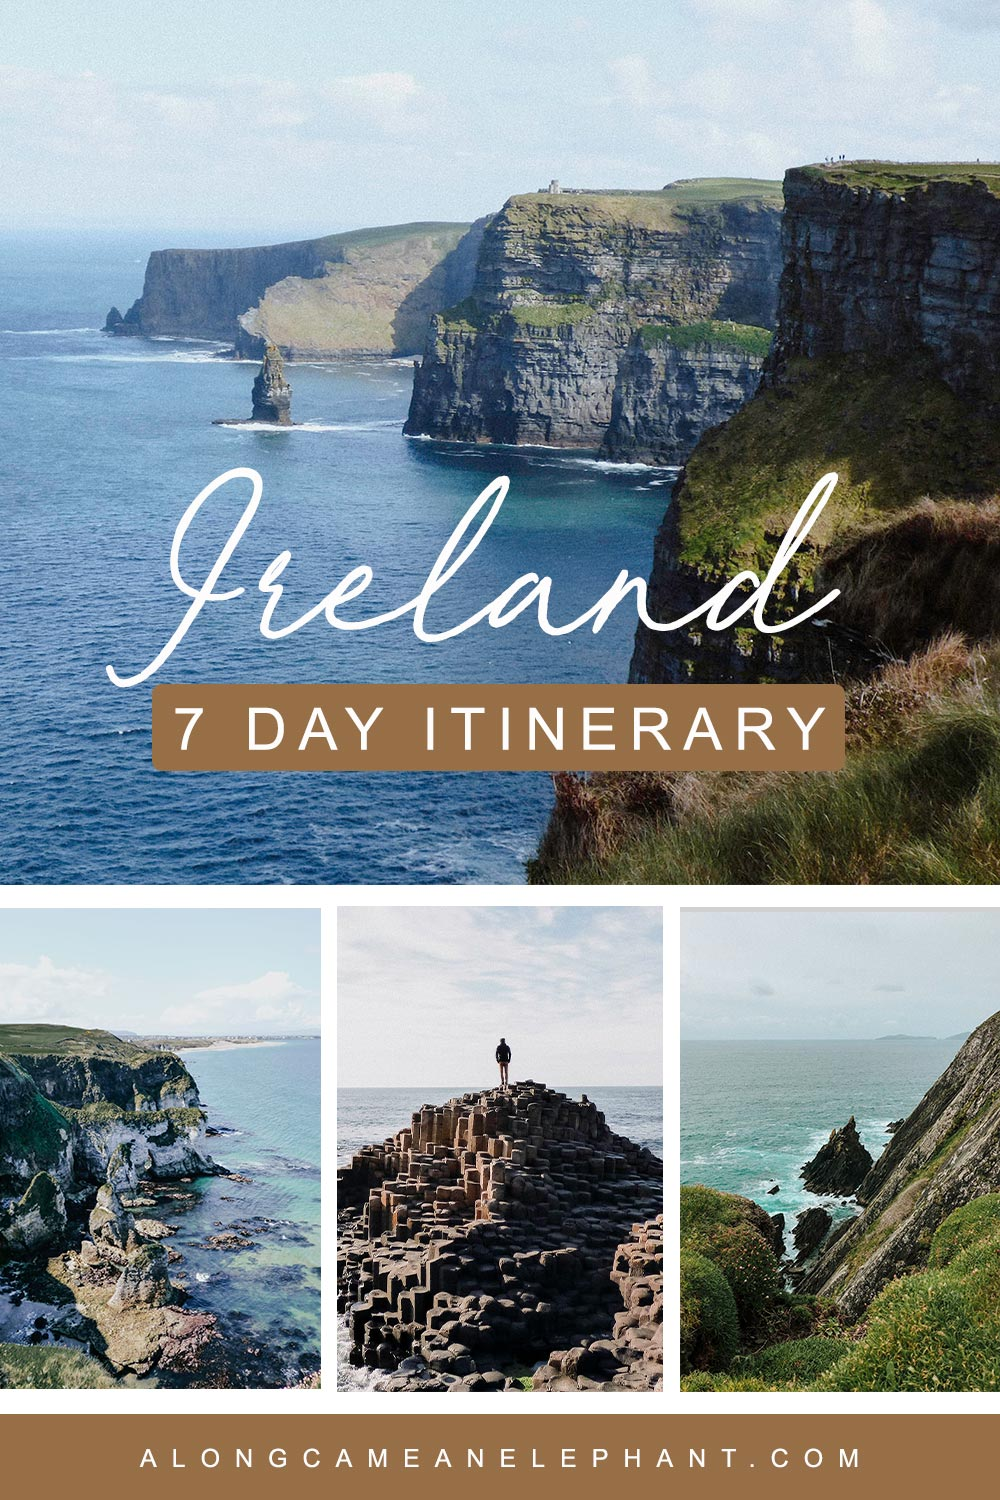 Looking for inspiration for a short road trip to Ireland? Check out our 7 days in Ireland itinerary which includes all the major sights like the Ring of Kerry, the Wild Atlantic Way, Cliffs of Moher and the Giant Causeway. Also includes a 10 day alternative itinerary for people traveling by public transport!